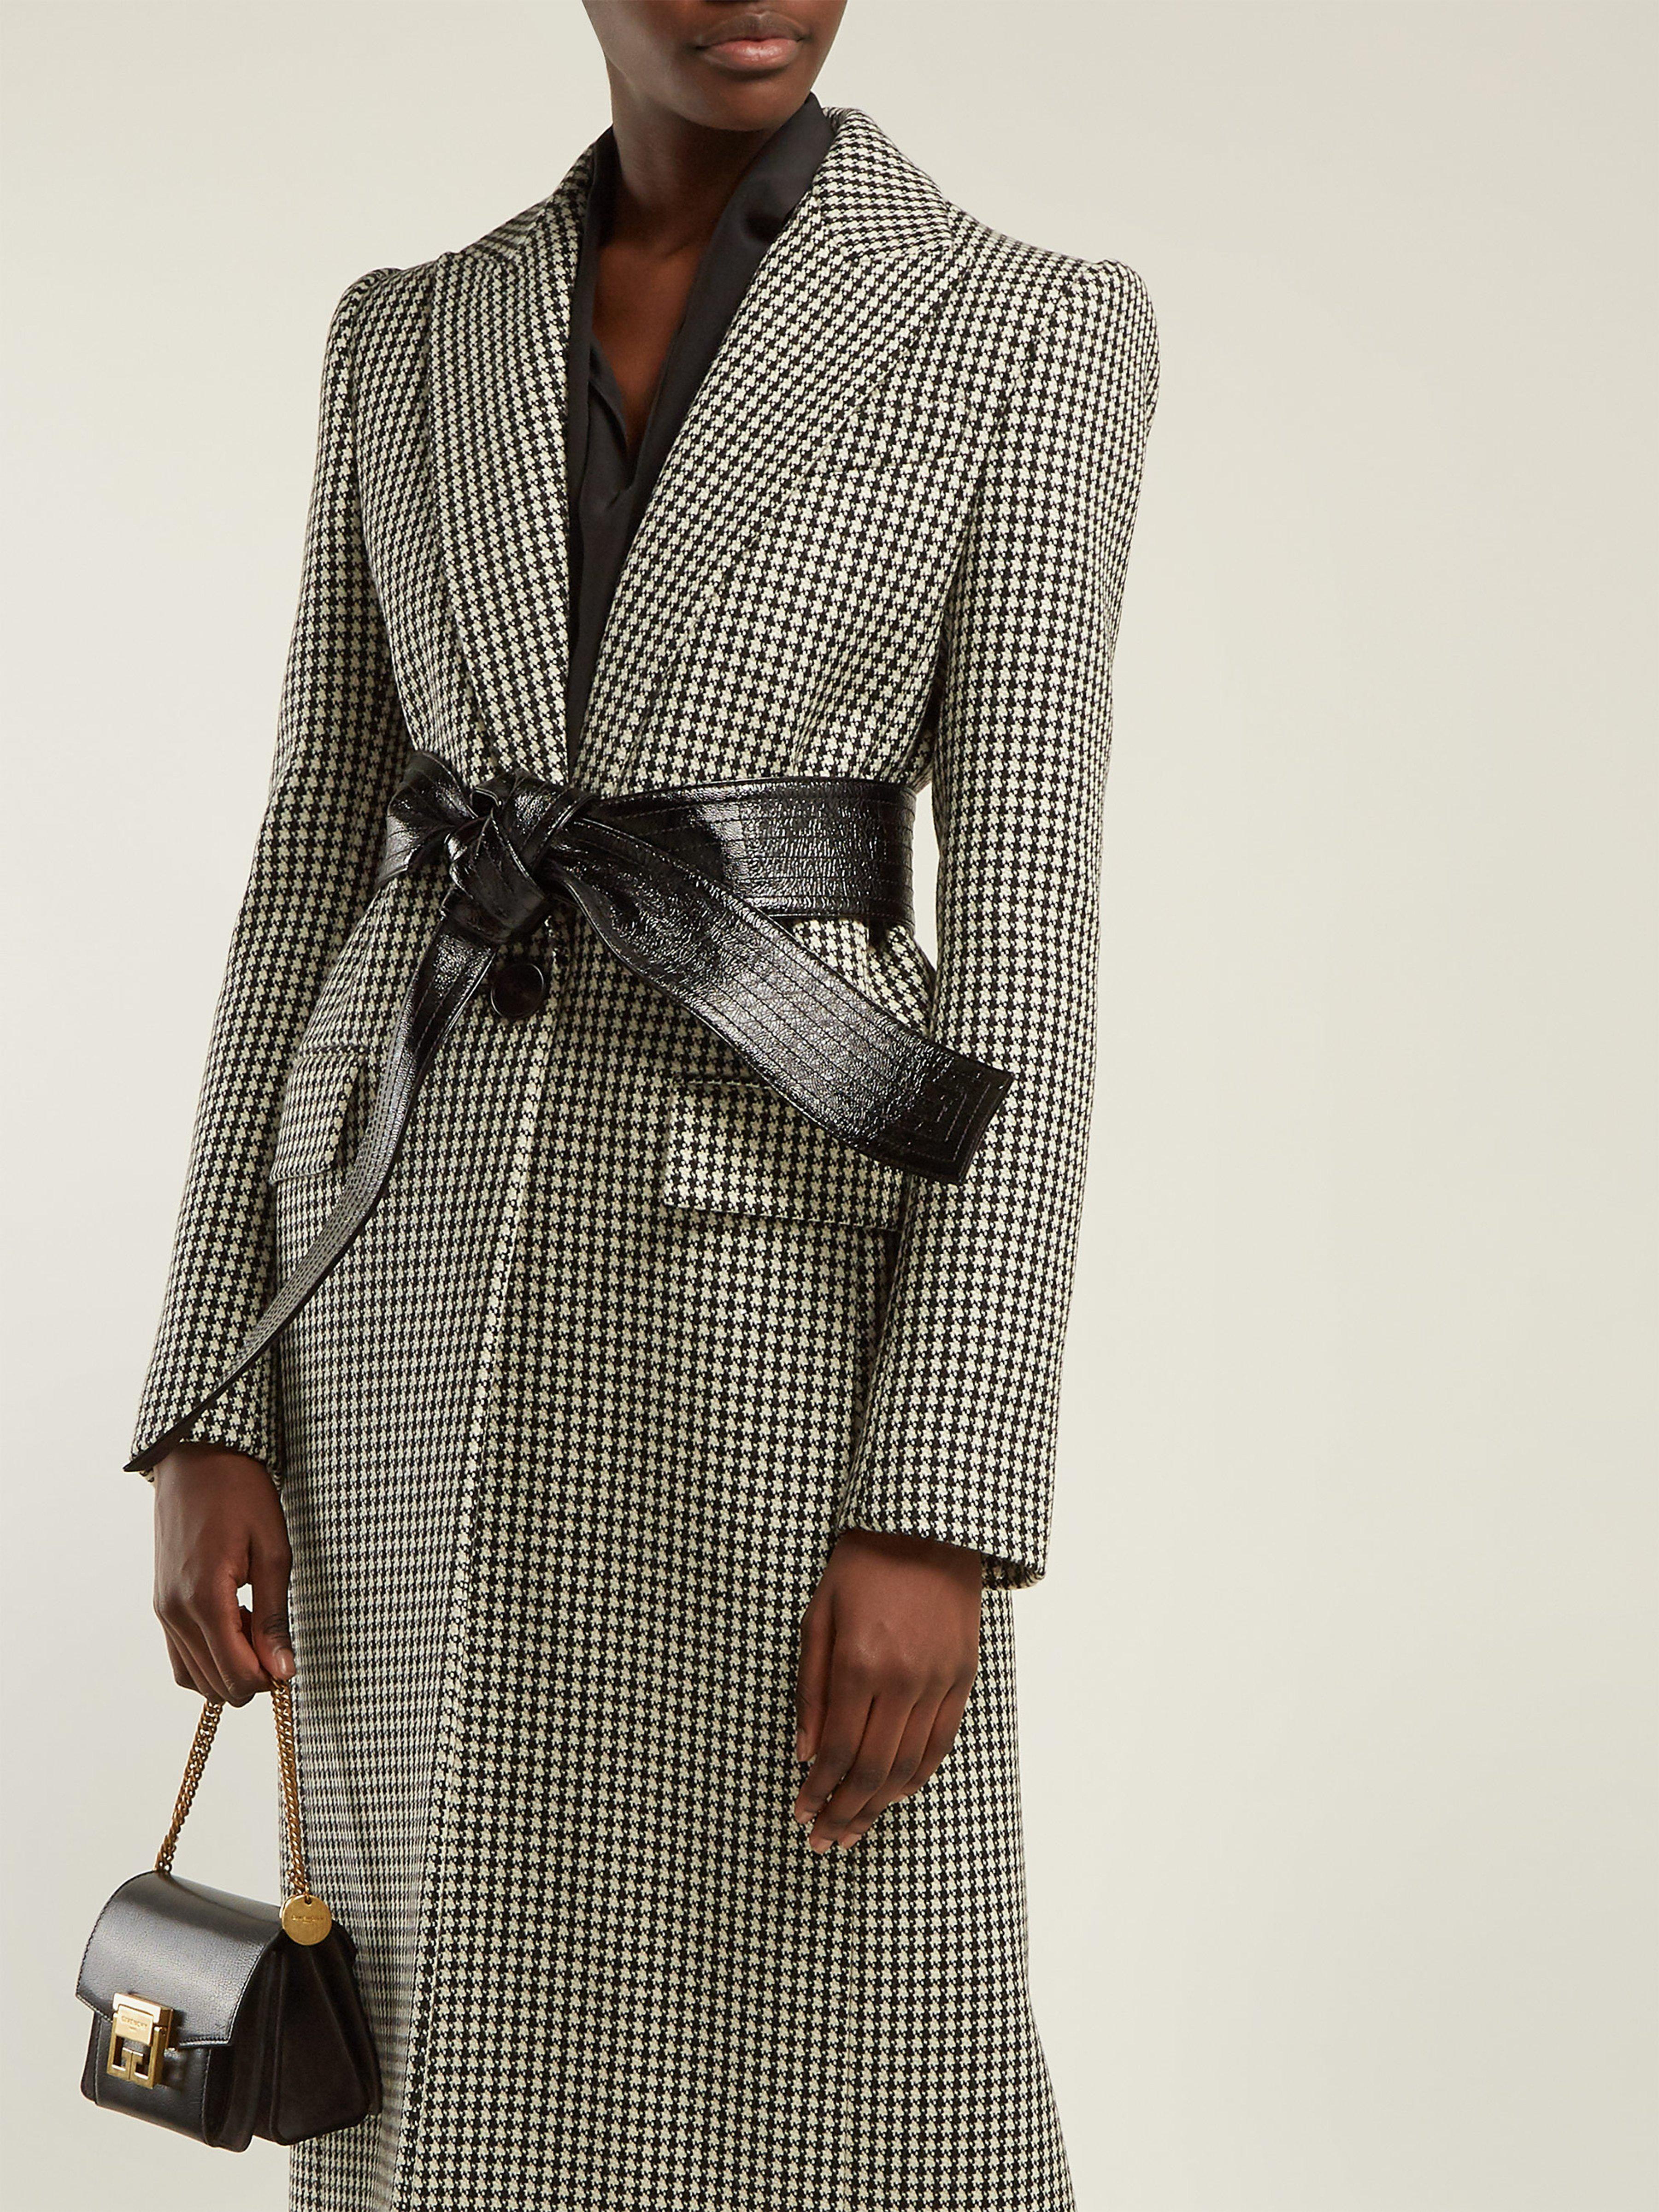 3ac4c99bdc0c Givenchy Houndstooth Wool Coat in Black - Lyst